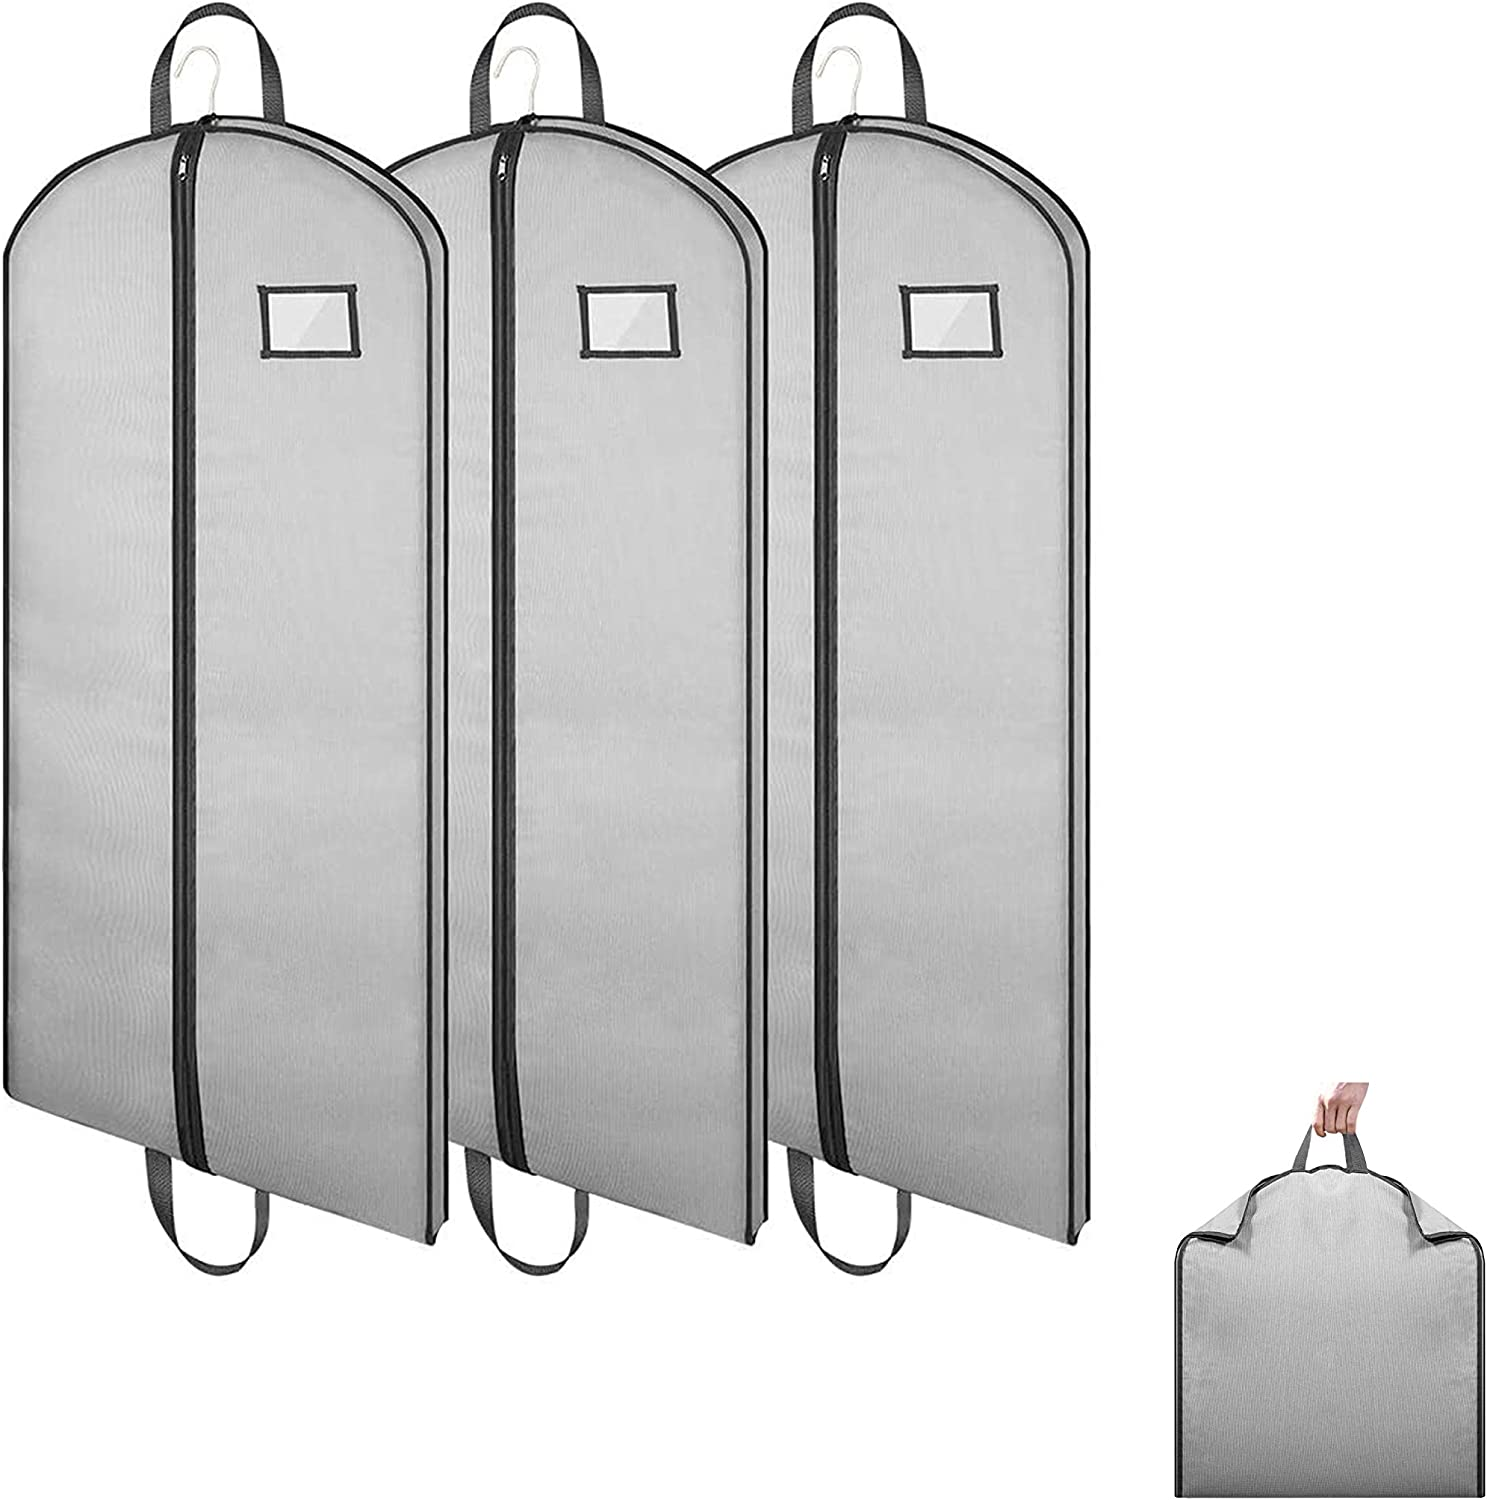 Marvelent Hanging Garment Bags online shopping Dust-Proof Sturd Max 47% OFF Suit Cover with